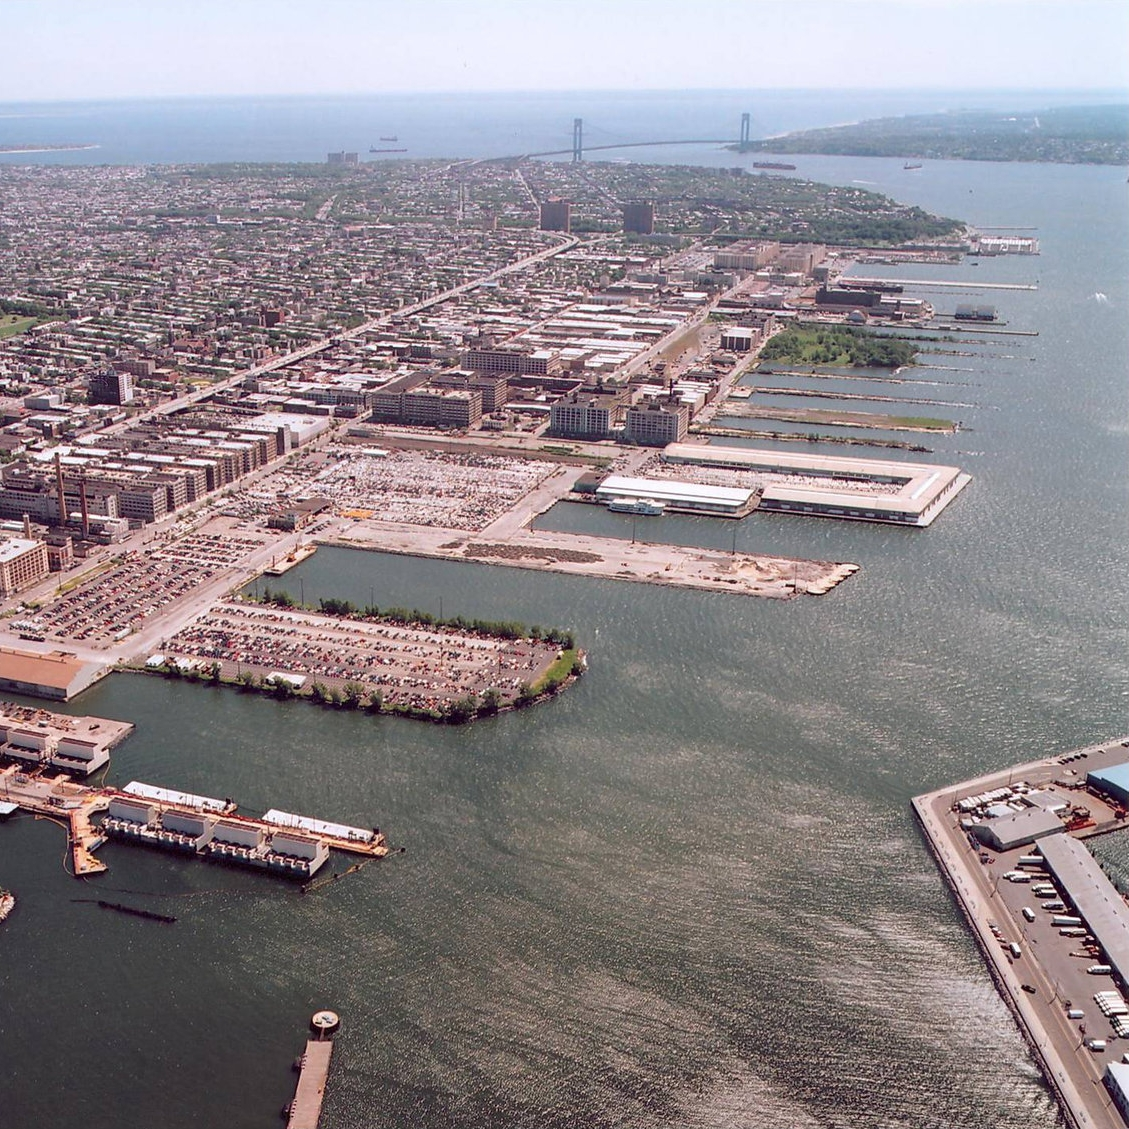 Community &   Industrial Business Resiliency    The Sunset Park industrial waterfront is being threatened by land speculation, potential rezonings, and high-end commercialization inconsistent with blue-collar manufacturing.